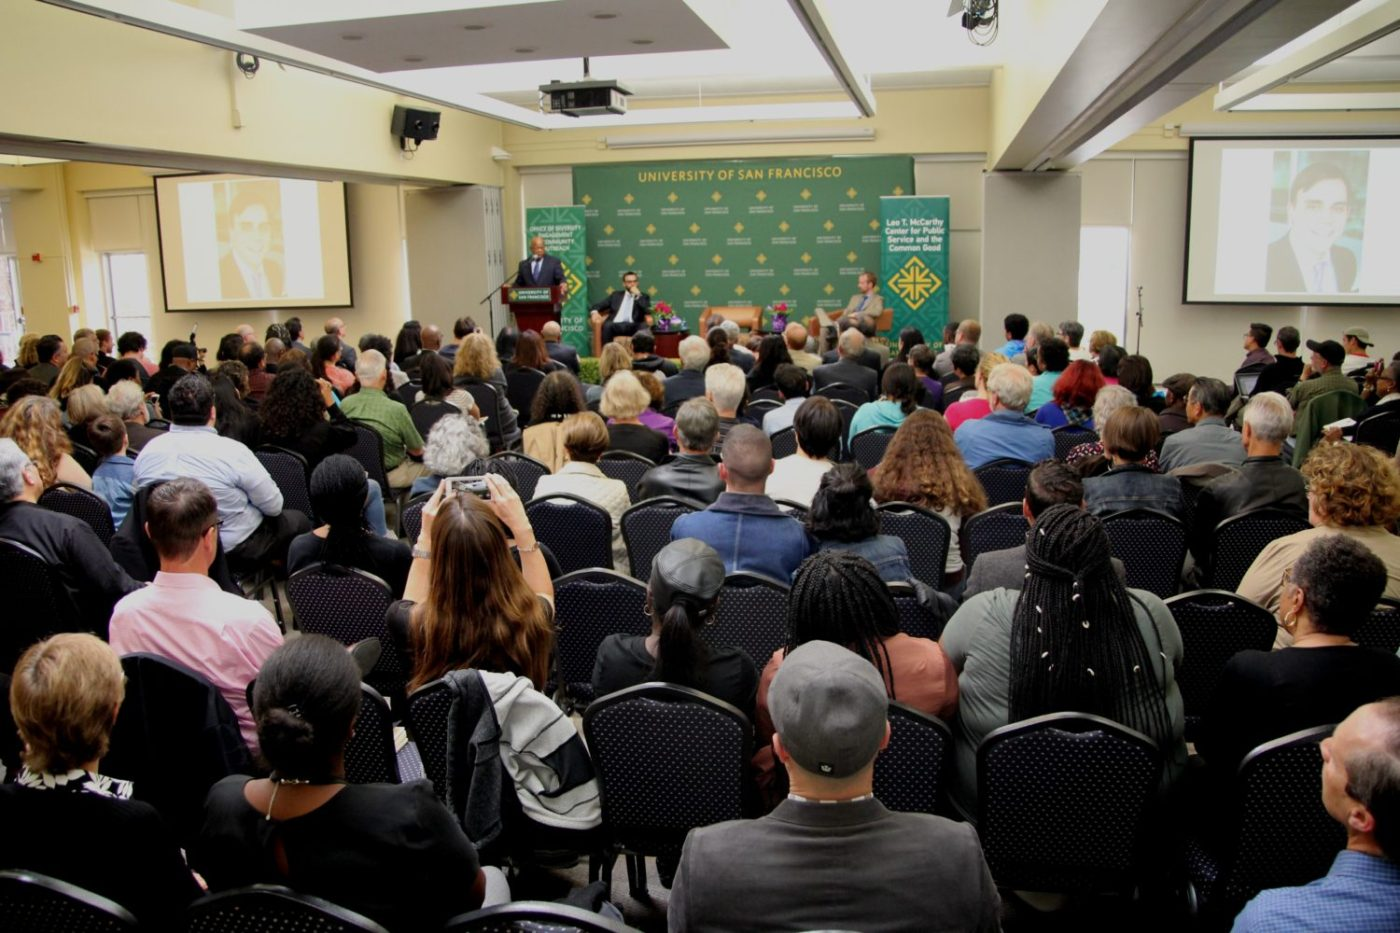 John-Lewis-speaks-at-USF-on-a-book-tour-big-crowd-2016-by-Johnnie-Burrell-1-1400x933, Am I my brother's keeper?, Culture Currents